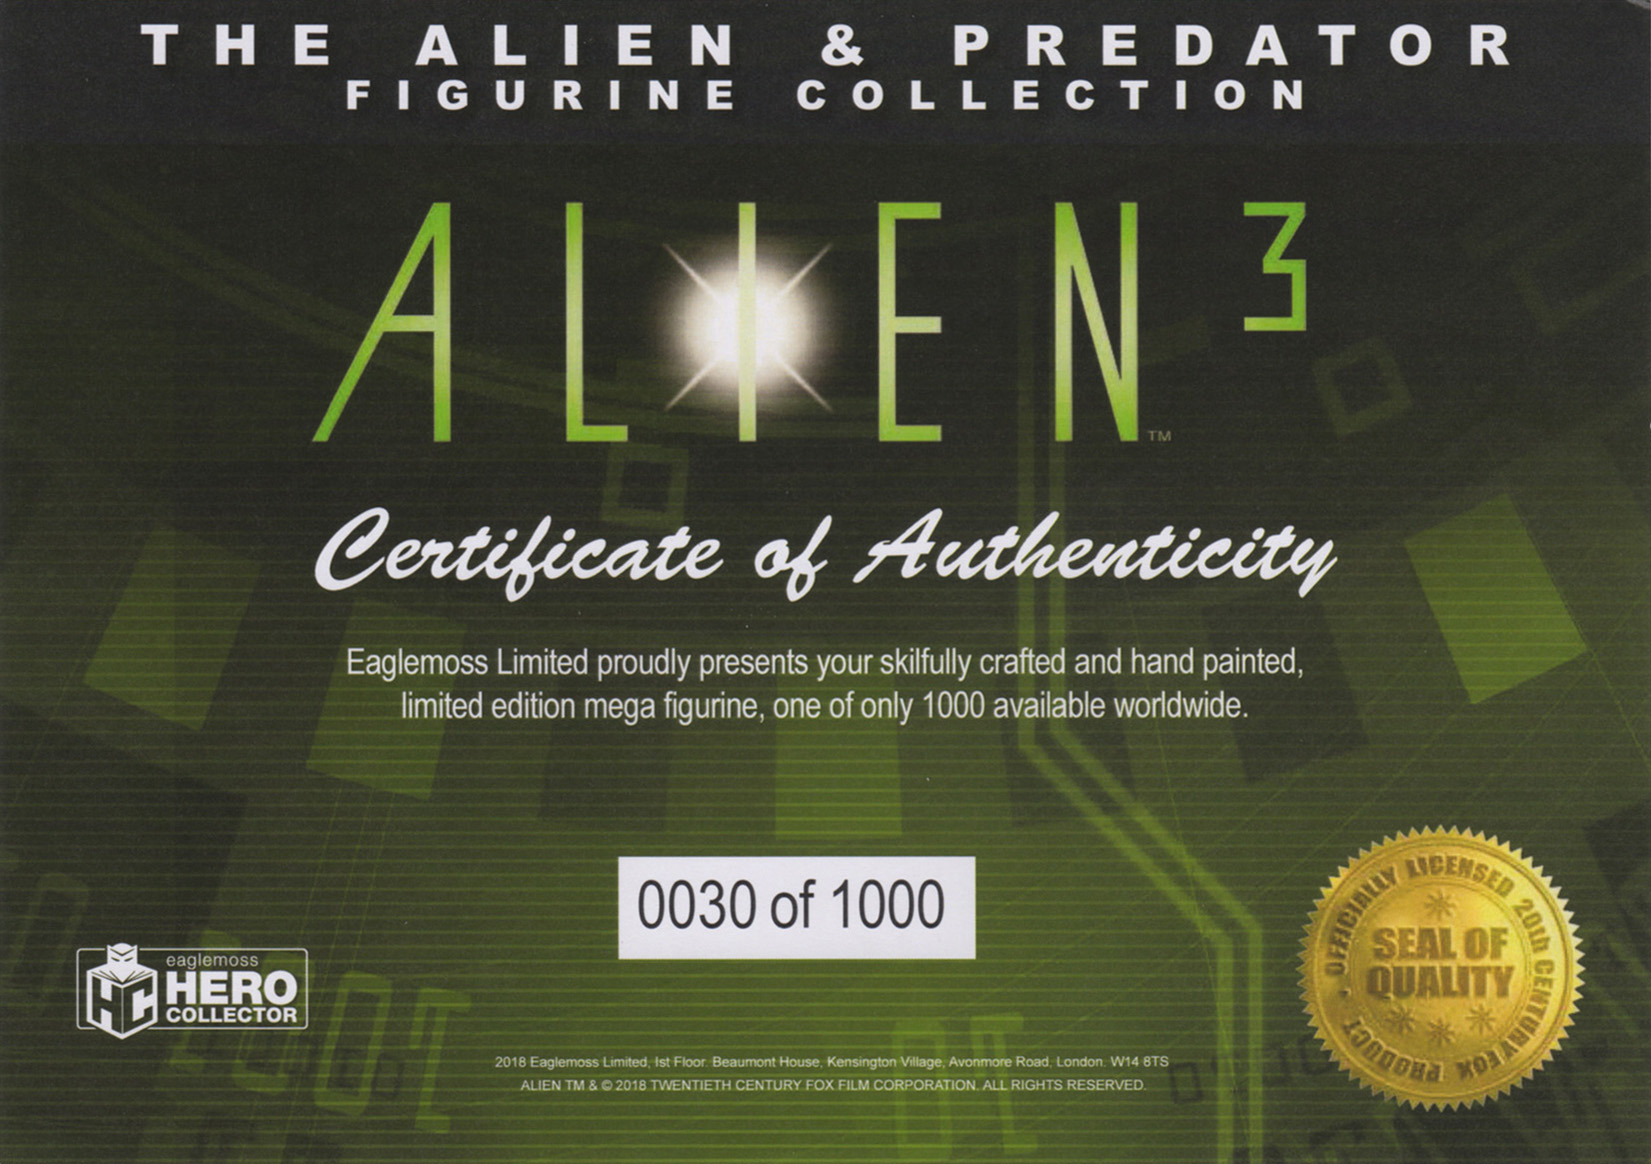 Eaglemoss Alien & Predator Magazine Issue Mega 7 Certificate